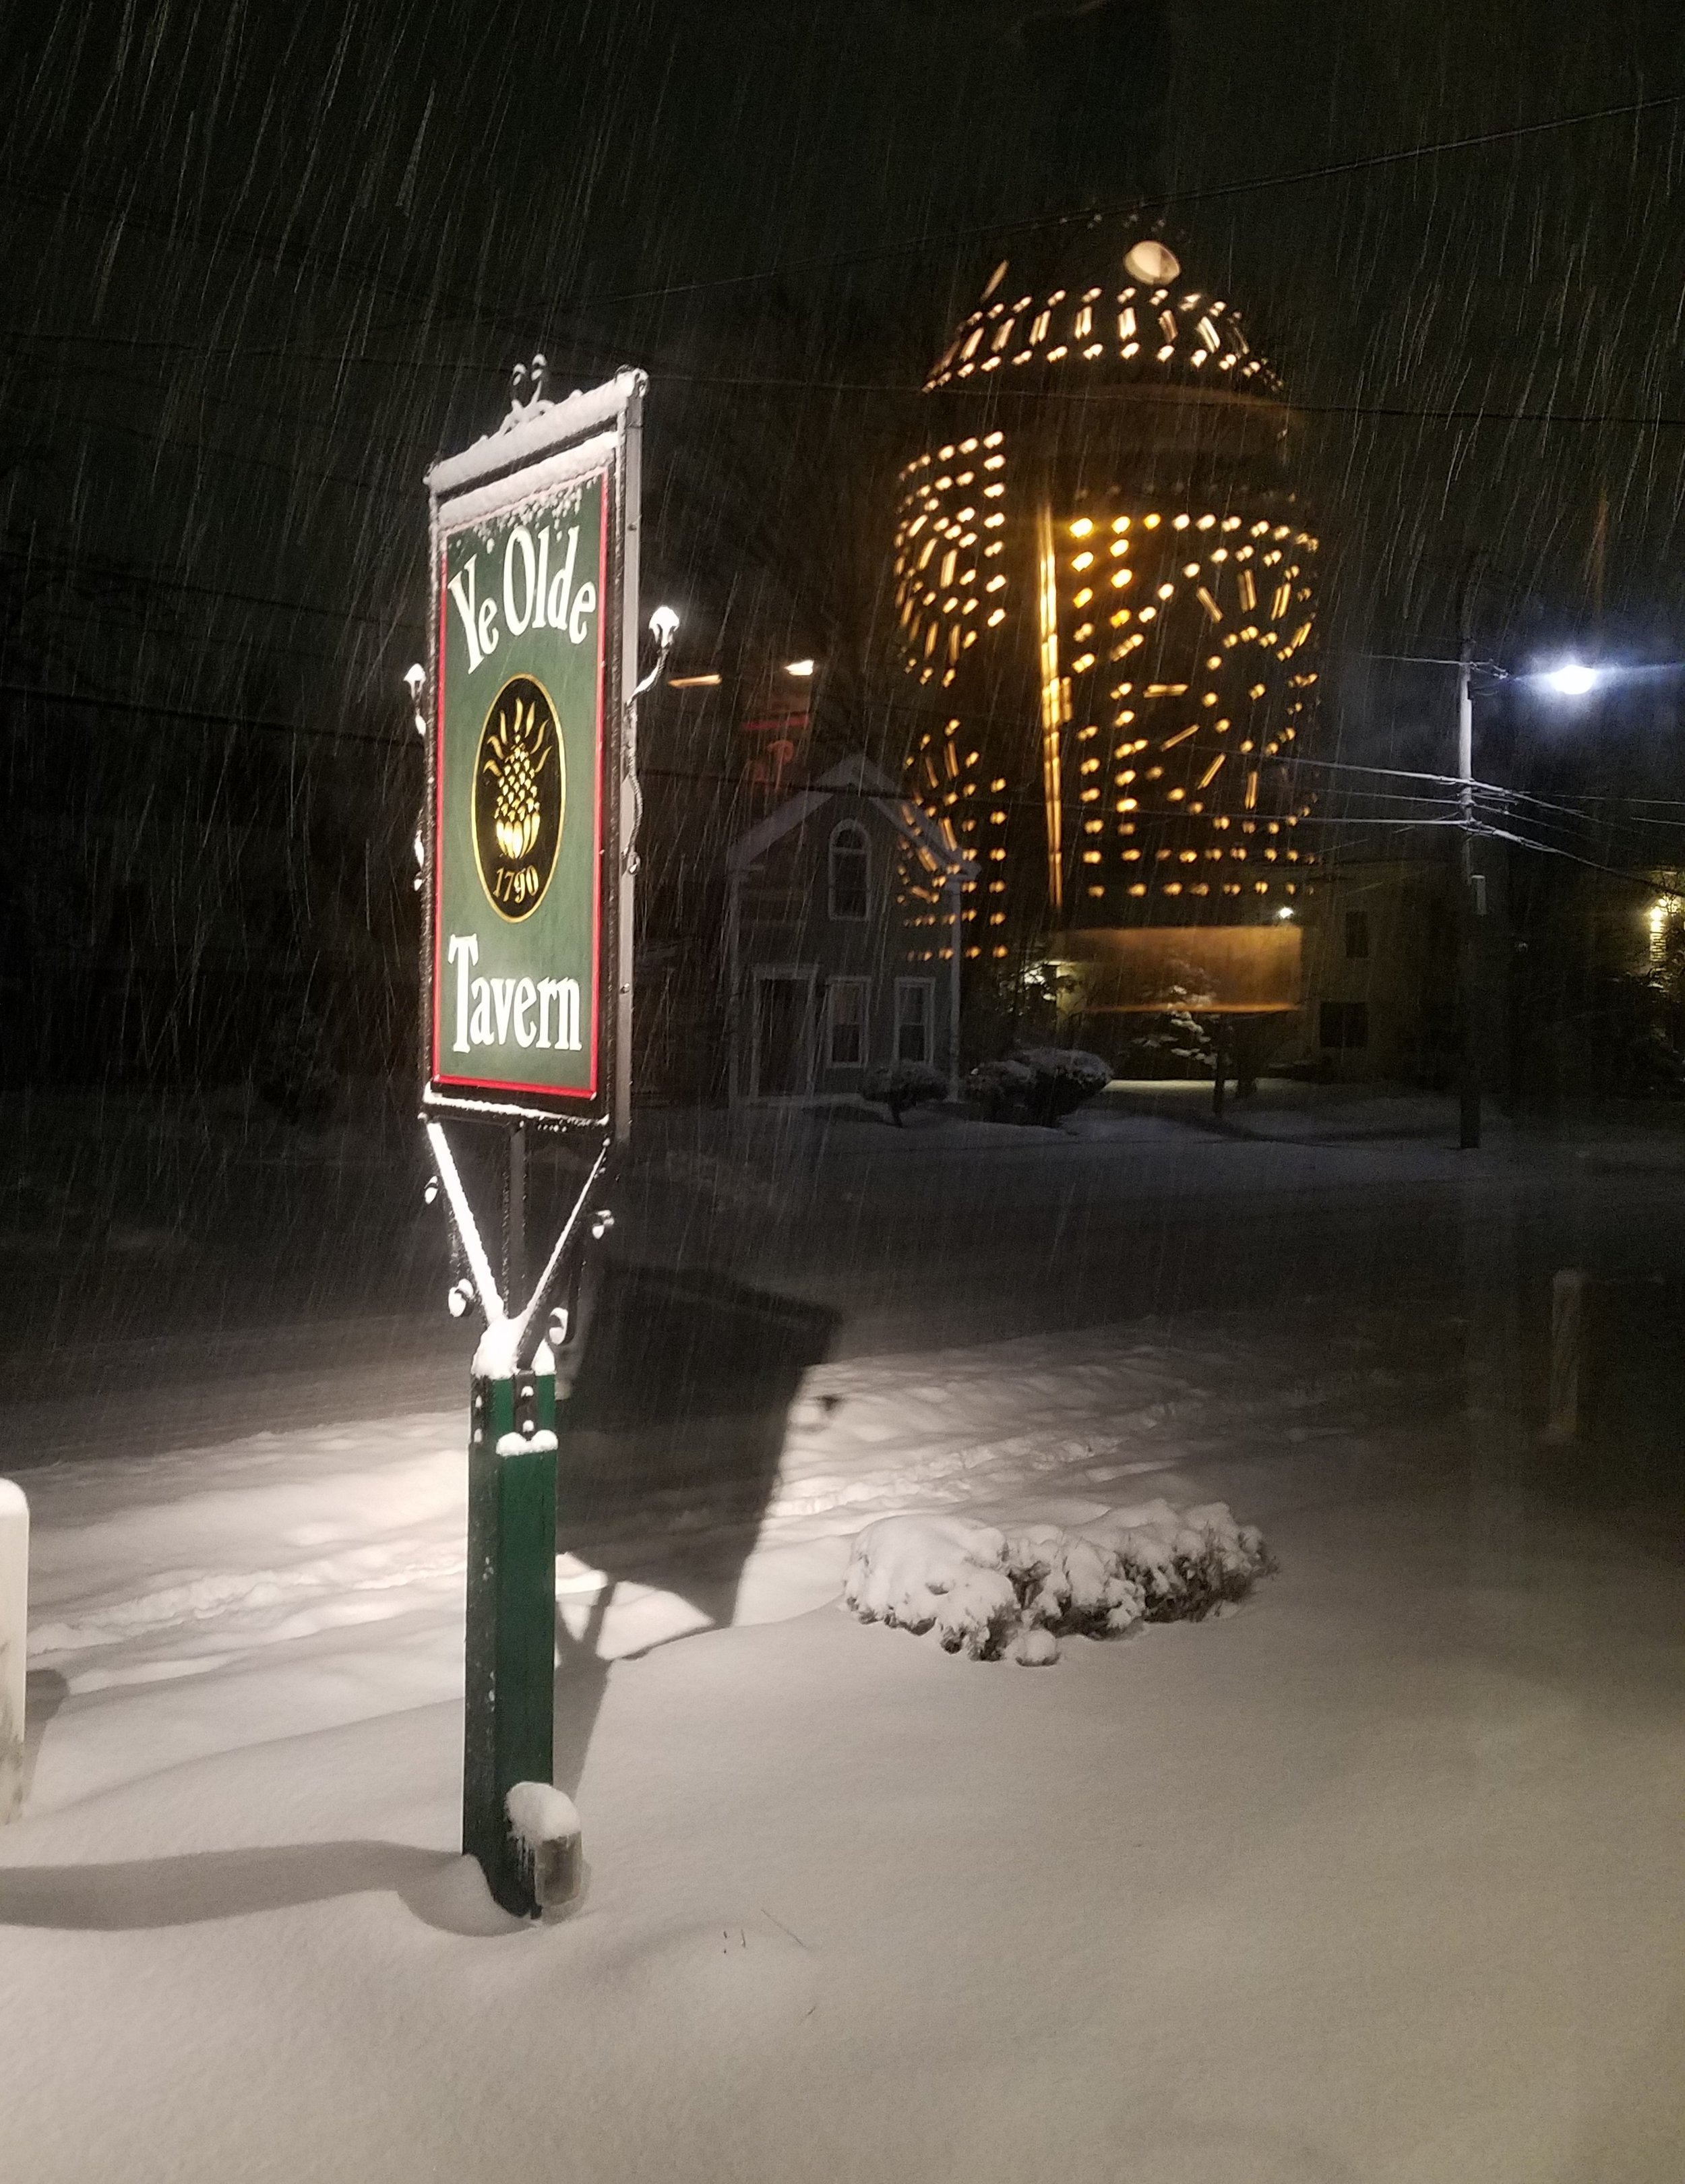 Mudroom Light reflection with Tavern sign and with Snow Feb 2018.jpg